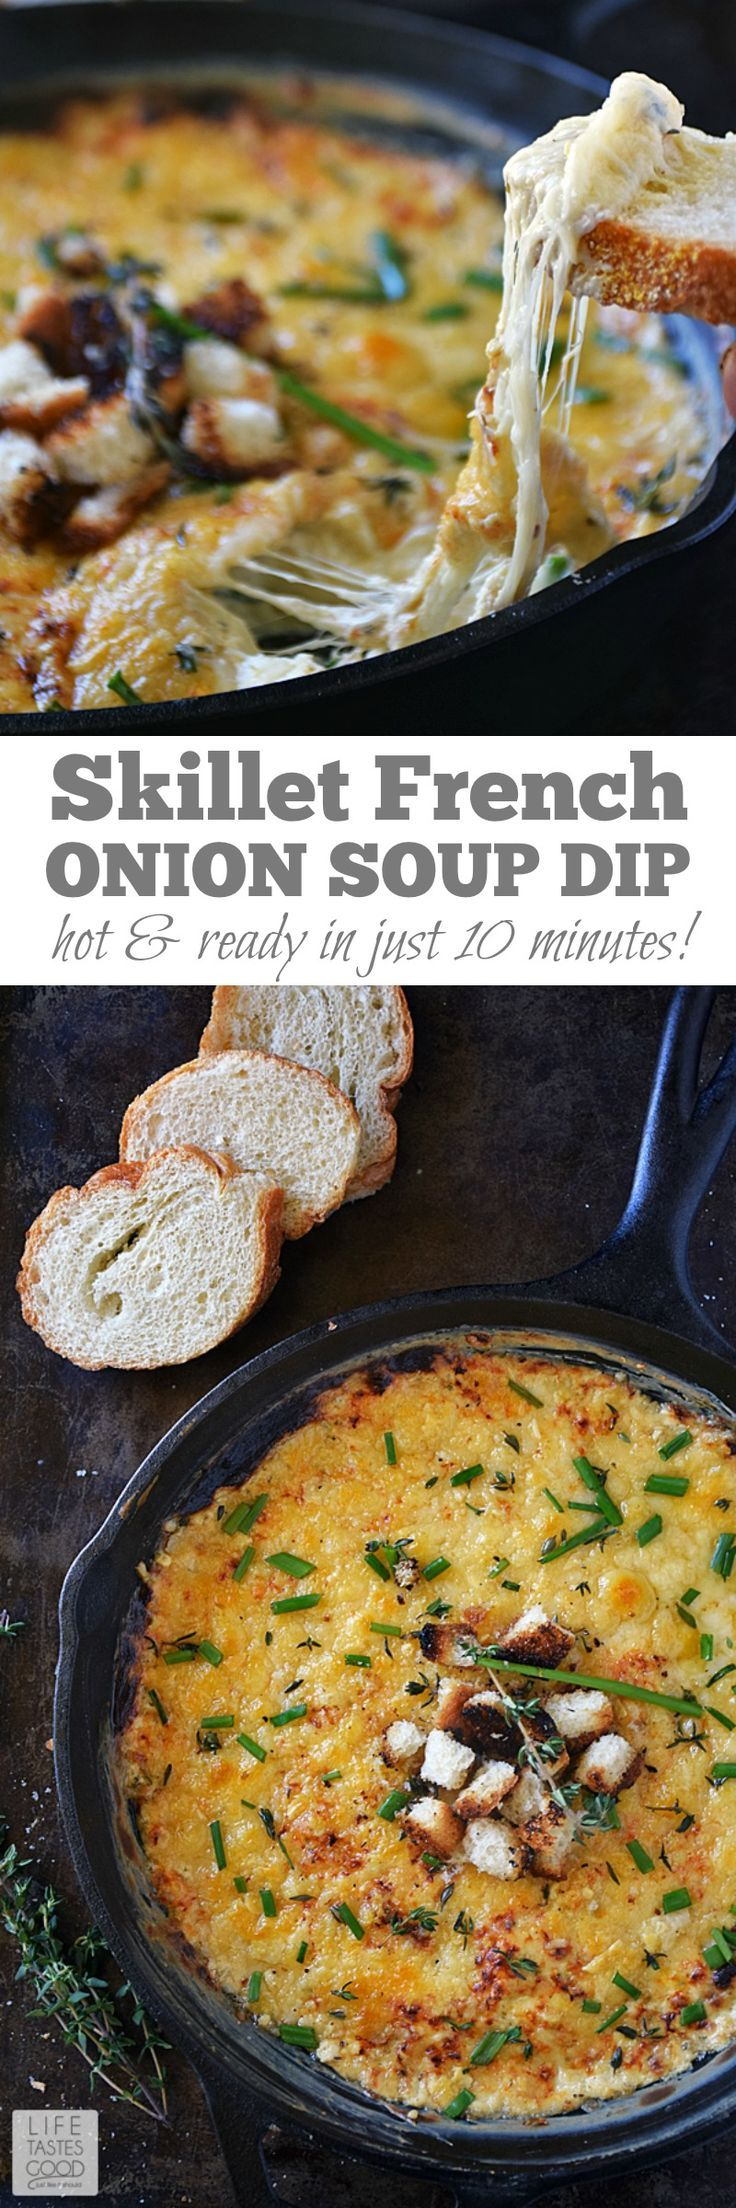 Creamy, cheesy, and savory, Skillet French Onion Soup Dip   by Life Tastes Good tastes like classic French Onion Soup and is so easy to make! Mixing the ingredients all in one skillet, while heating, is the key to having it hot and ready in just 10 minutes! This delicious appetizer is a real crowd pleaser!